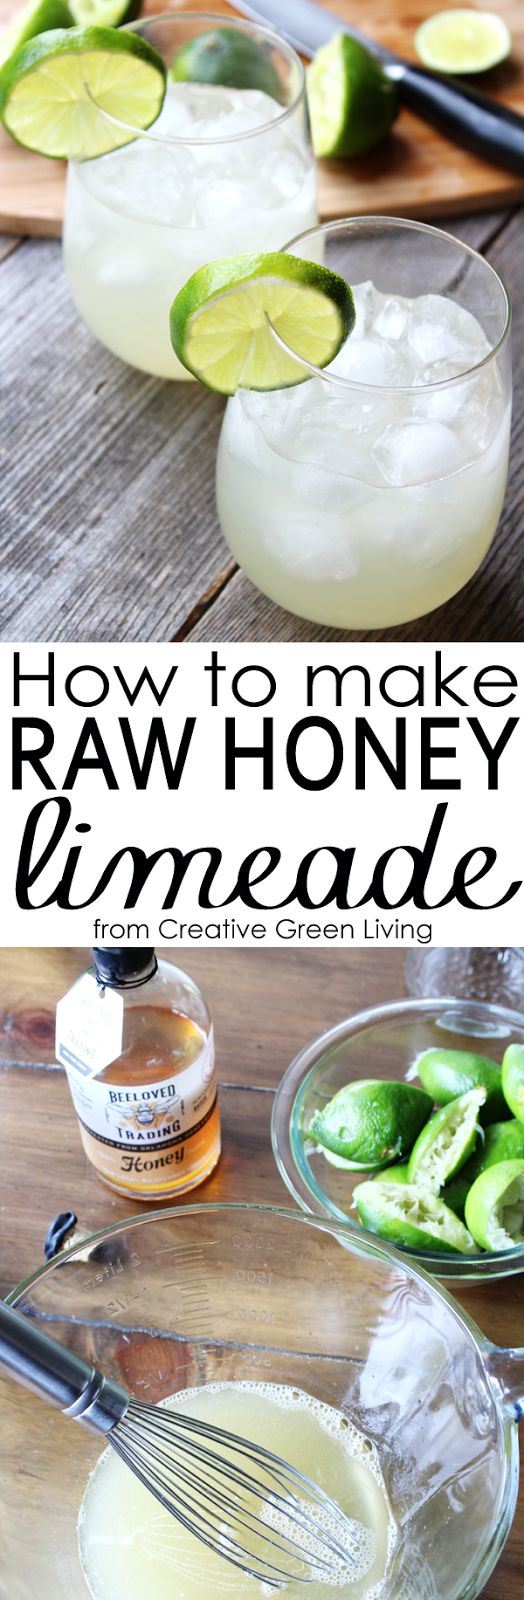 I love this homemade fresh limeade recipe made with healthy raw honey instead of refined sugar. You could dress it up with mint or sparkling water to make a fancier limeade drink, too!  (brought to you by BeeLoved Trading)